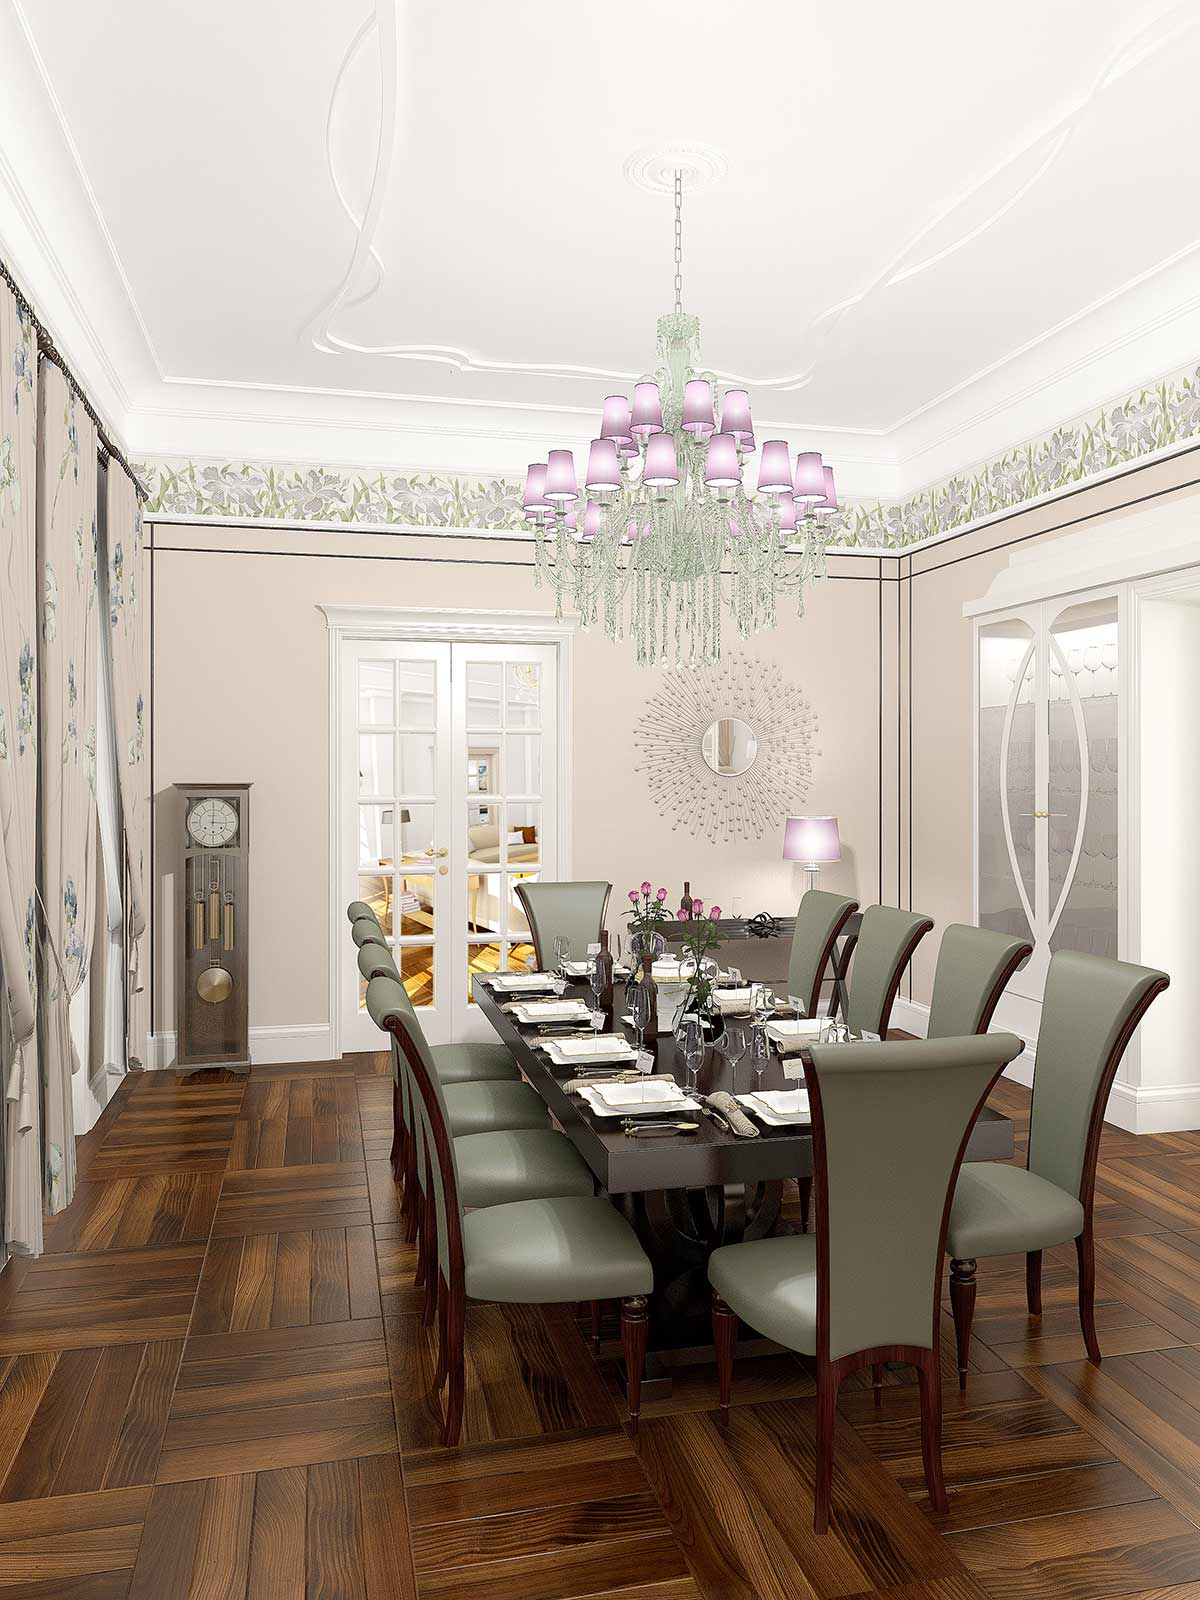 3D Visualisation dinning room, 3D modeling, Art Deco interior London, UK.